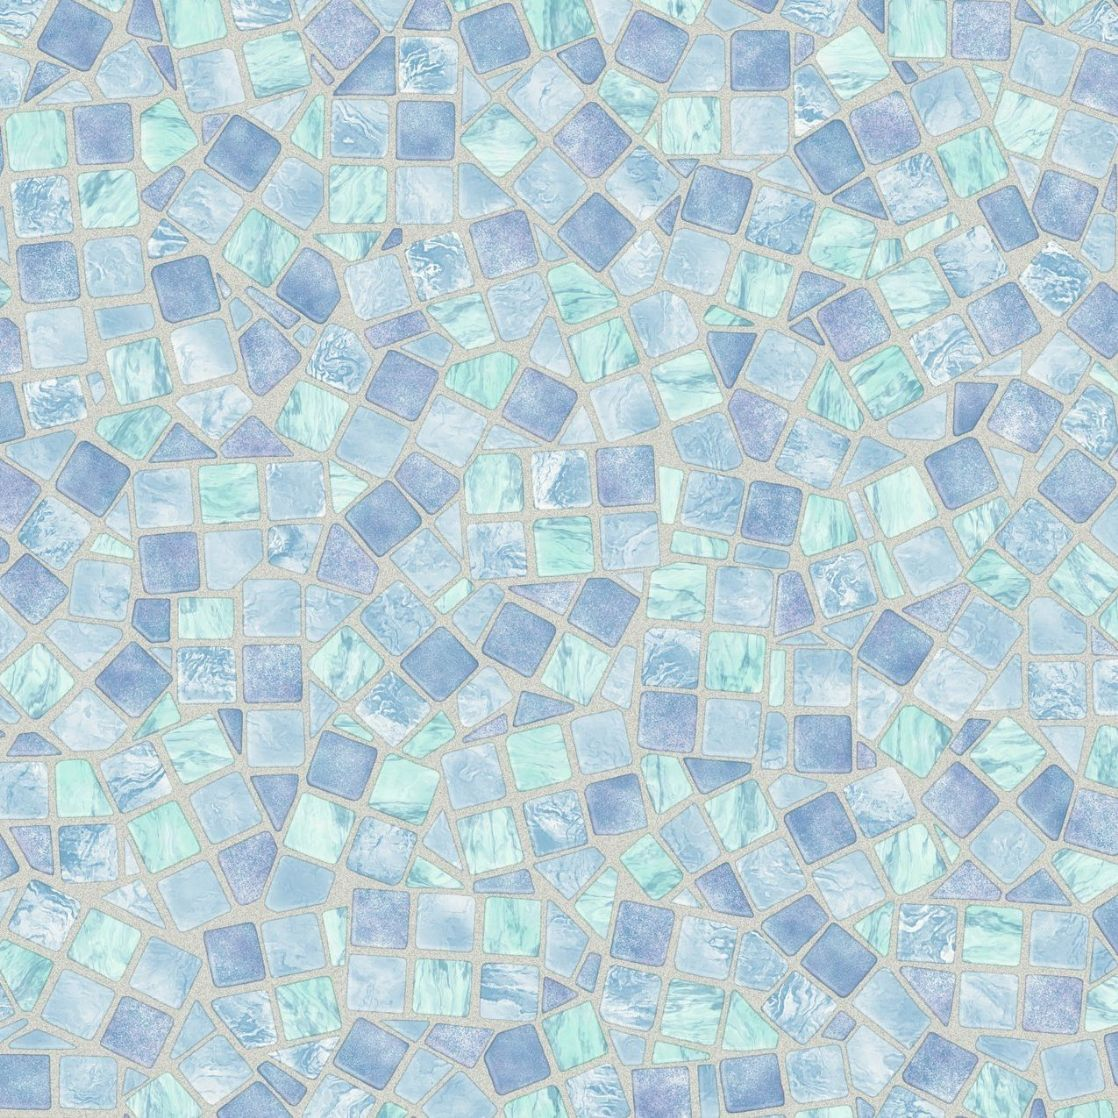 floor-design-interior-stunning-light-blue-glass-vinyl-mosaic-tile-for-home-flooring-ideas-terrific-home-interior-and-flooring-design-with-vinyl-mosaic-tiles